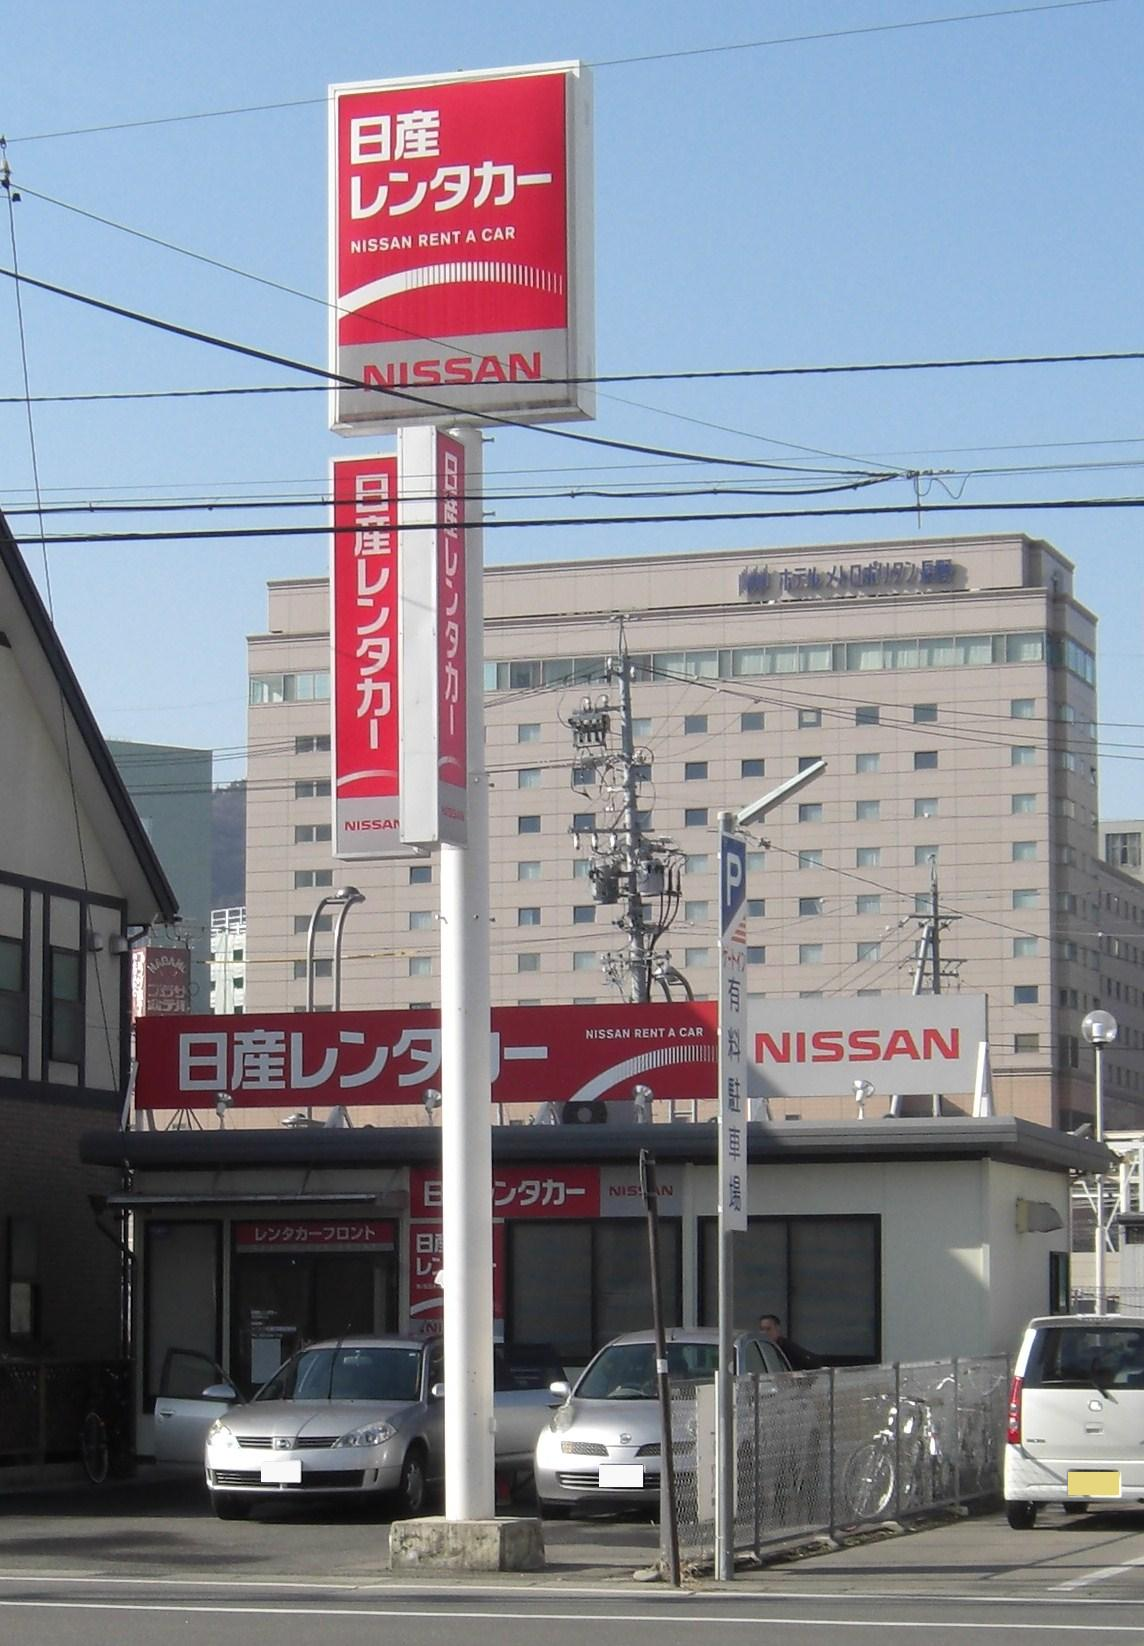 File:NISSAN RENT A CAR Nagano